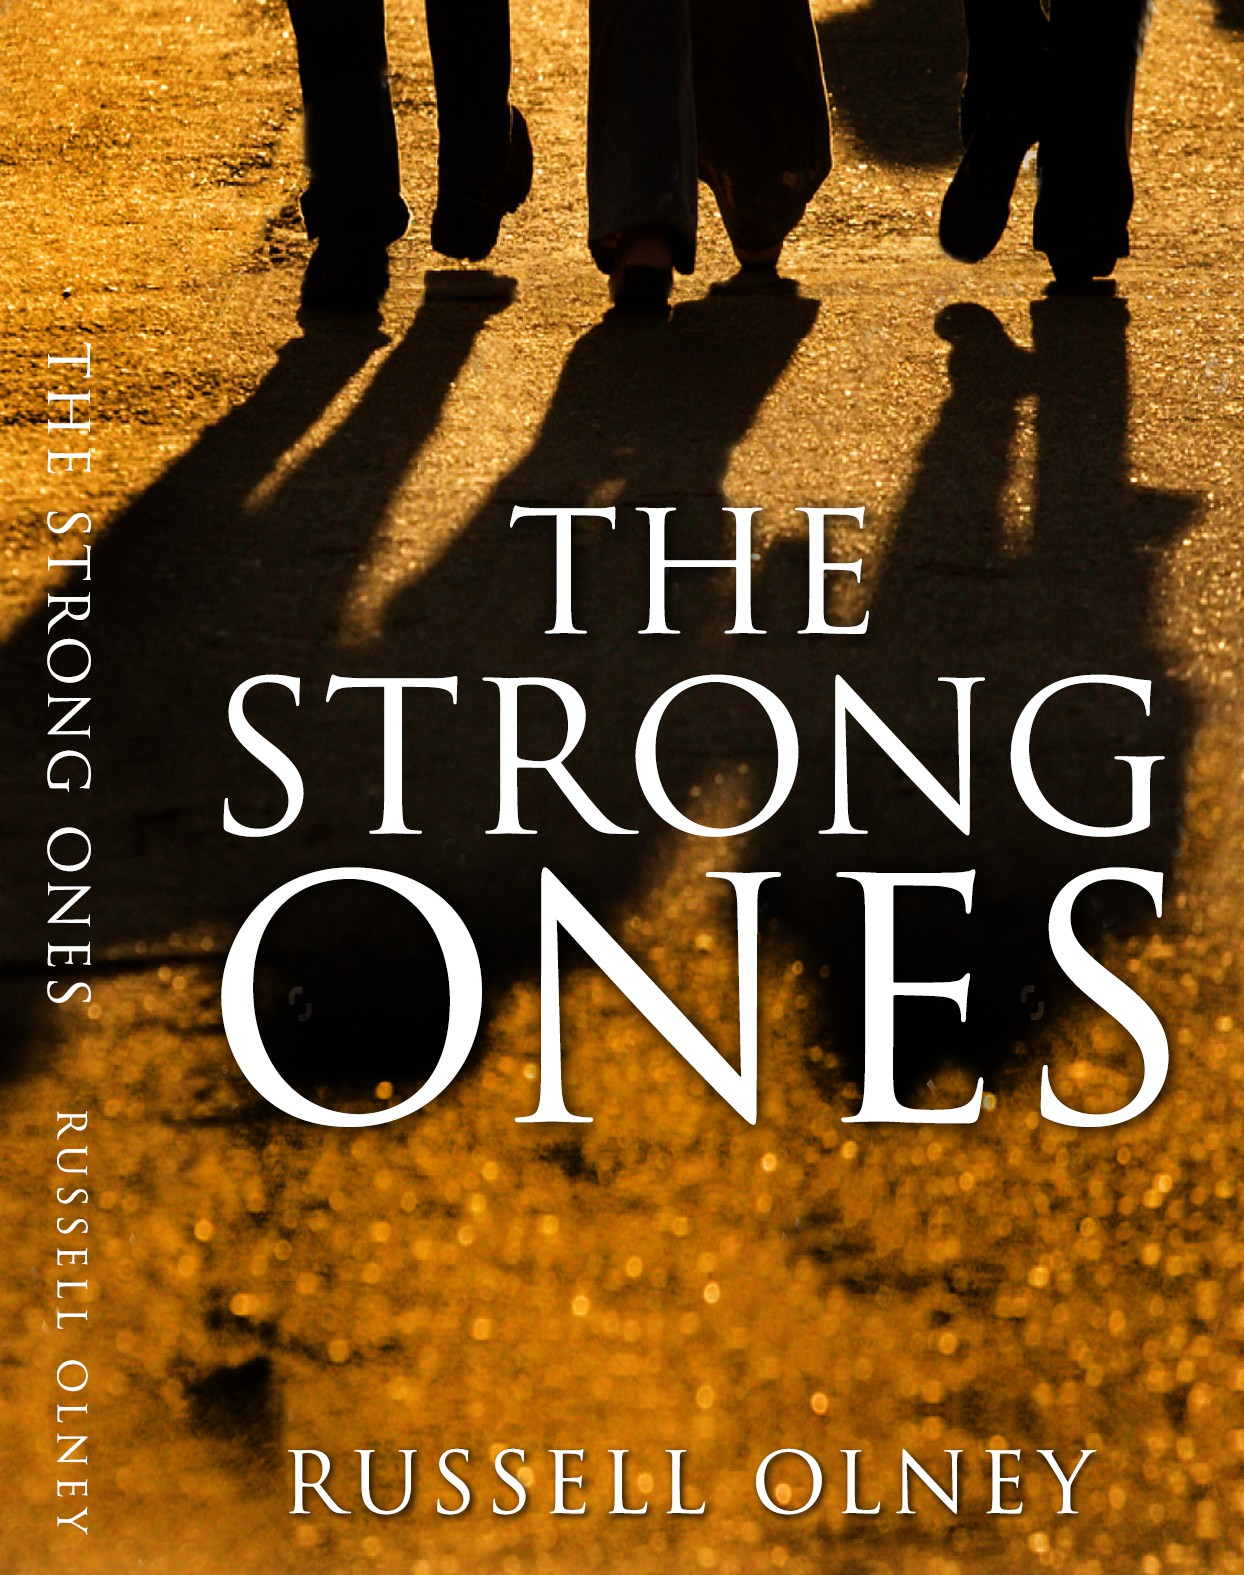 Design a book cover for The Strong Ones